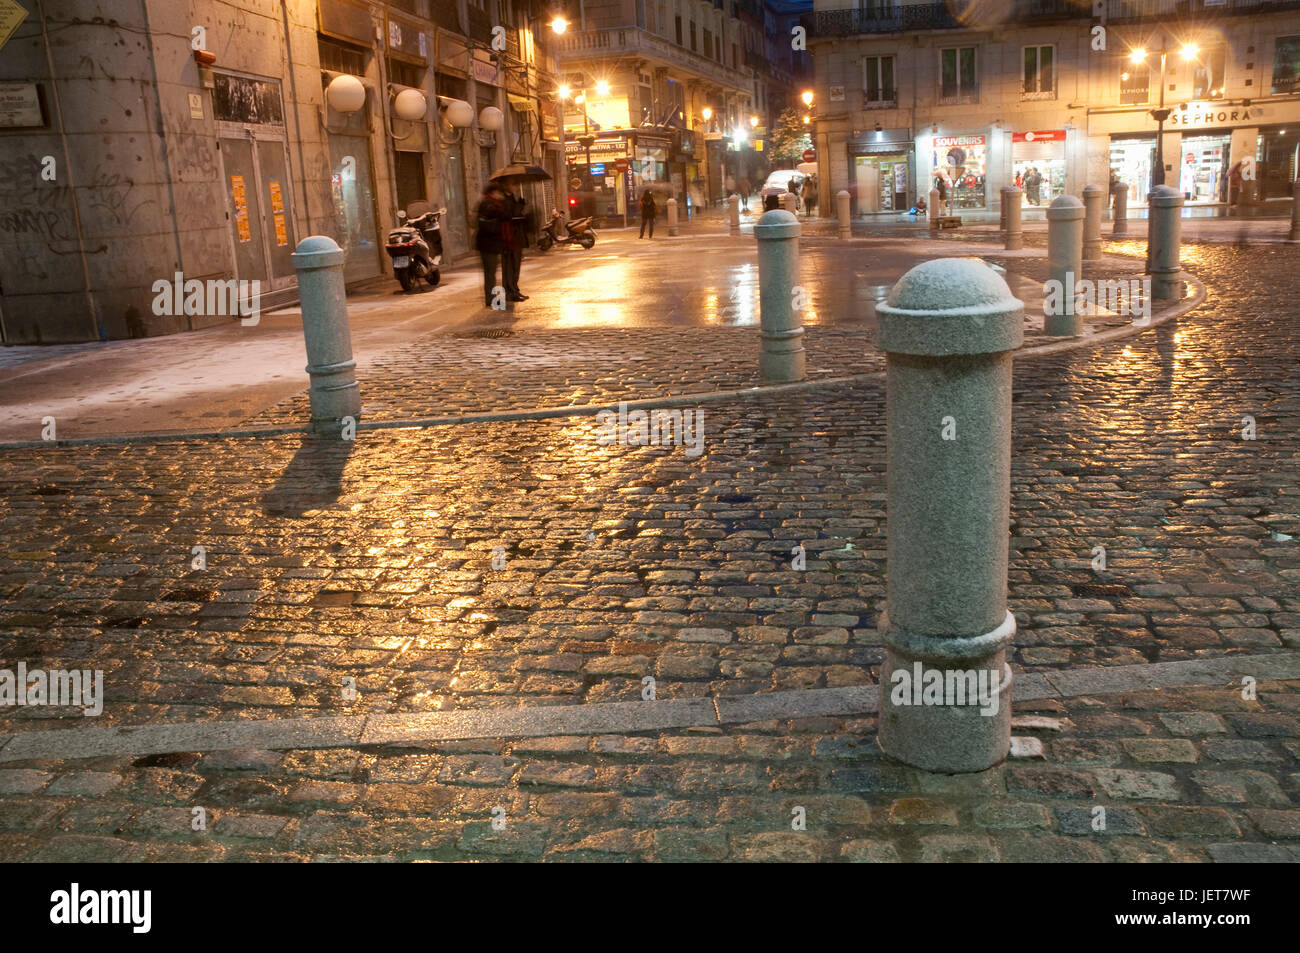 Wet and snow covered pavement, night view. Puerta del Sol, Madrid, Spain. Stock Photo